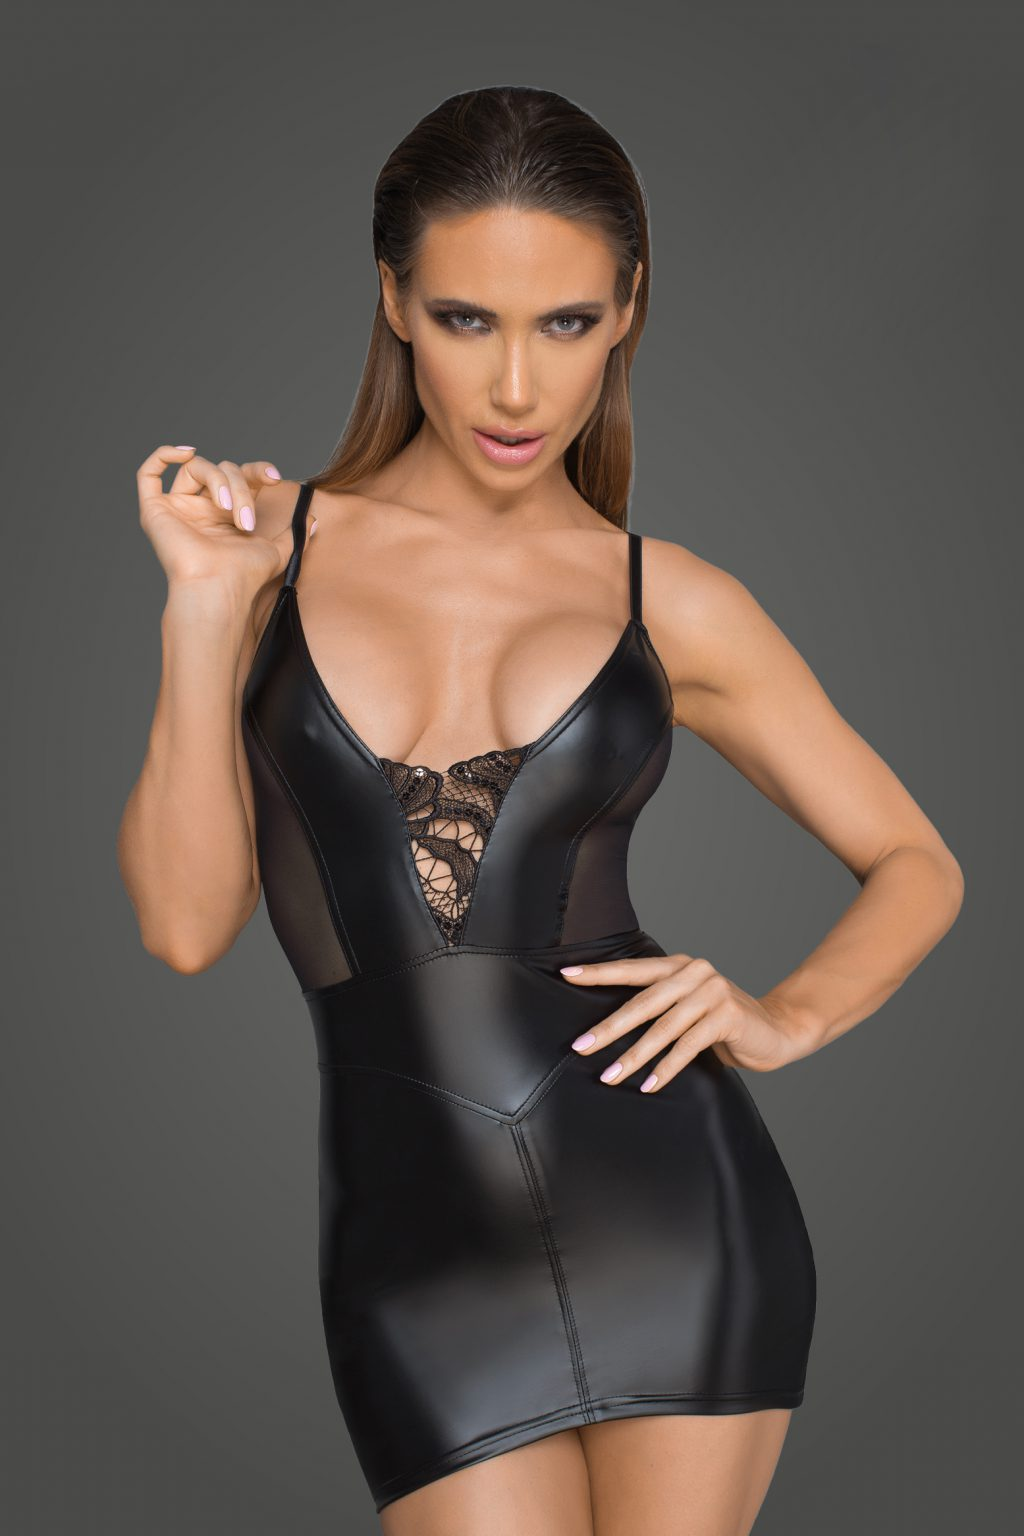 Powerwetlook minidress with tulle inserts and corset cuts